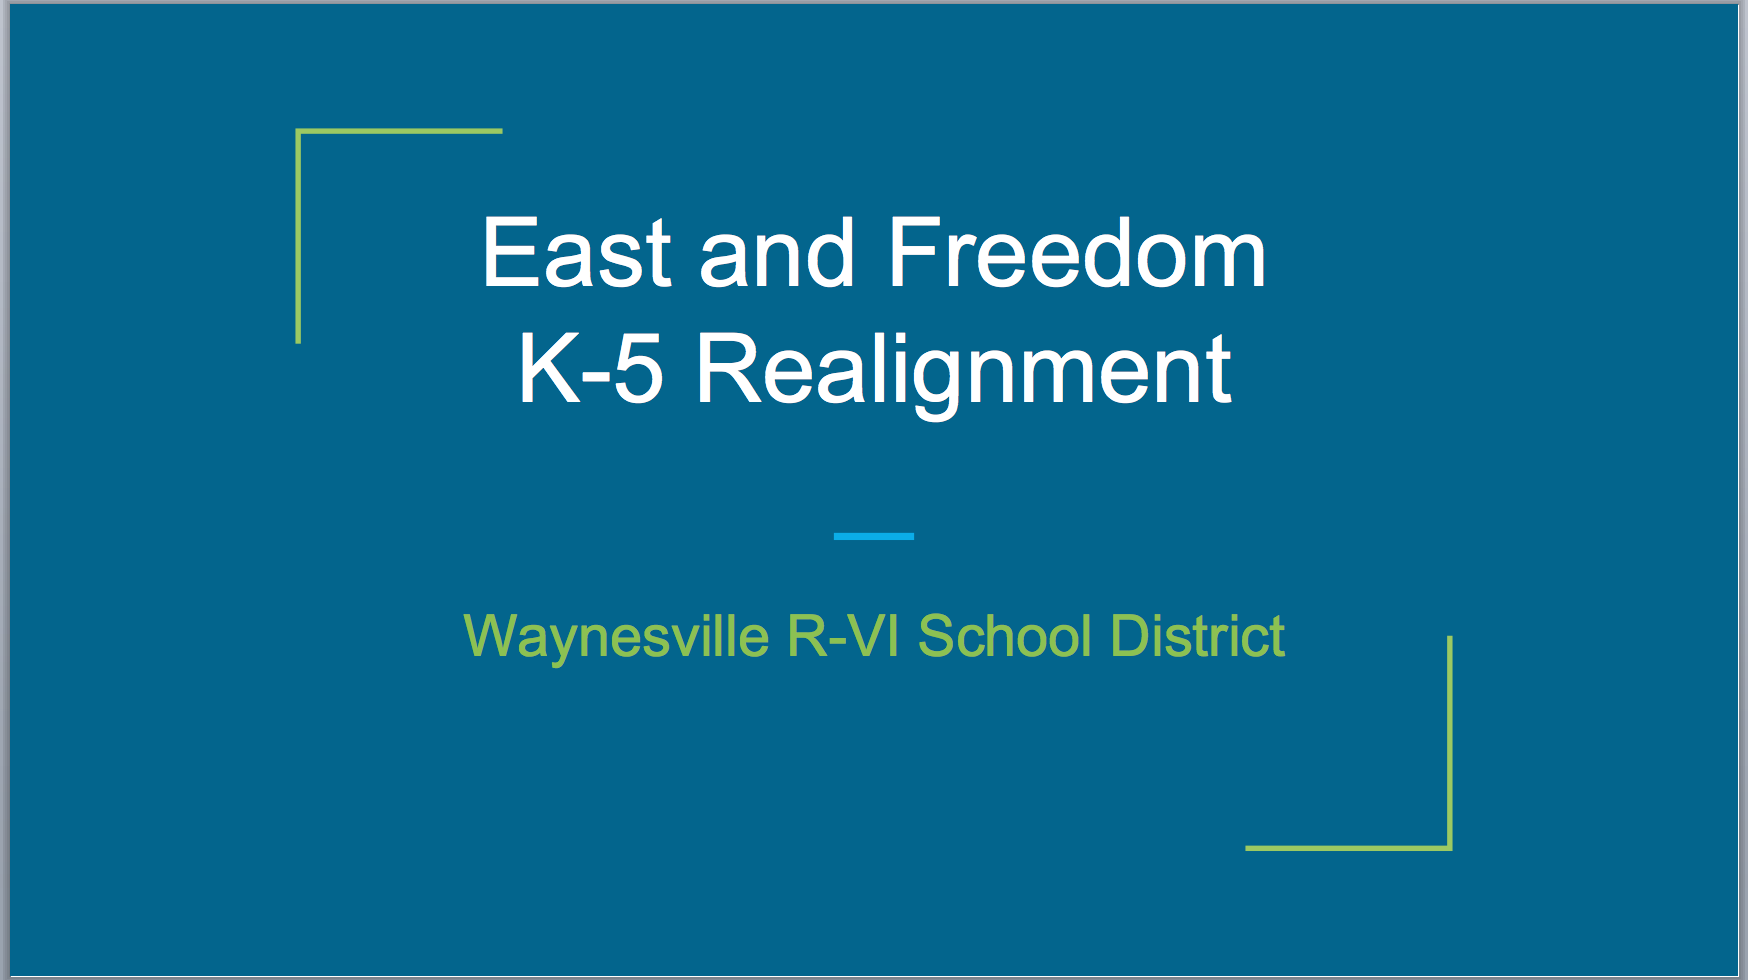 K-5 Realignment